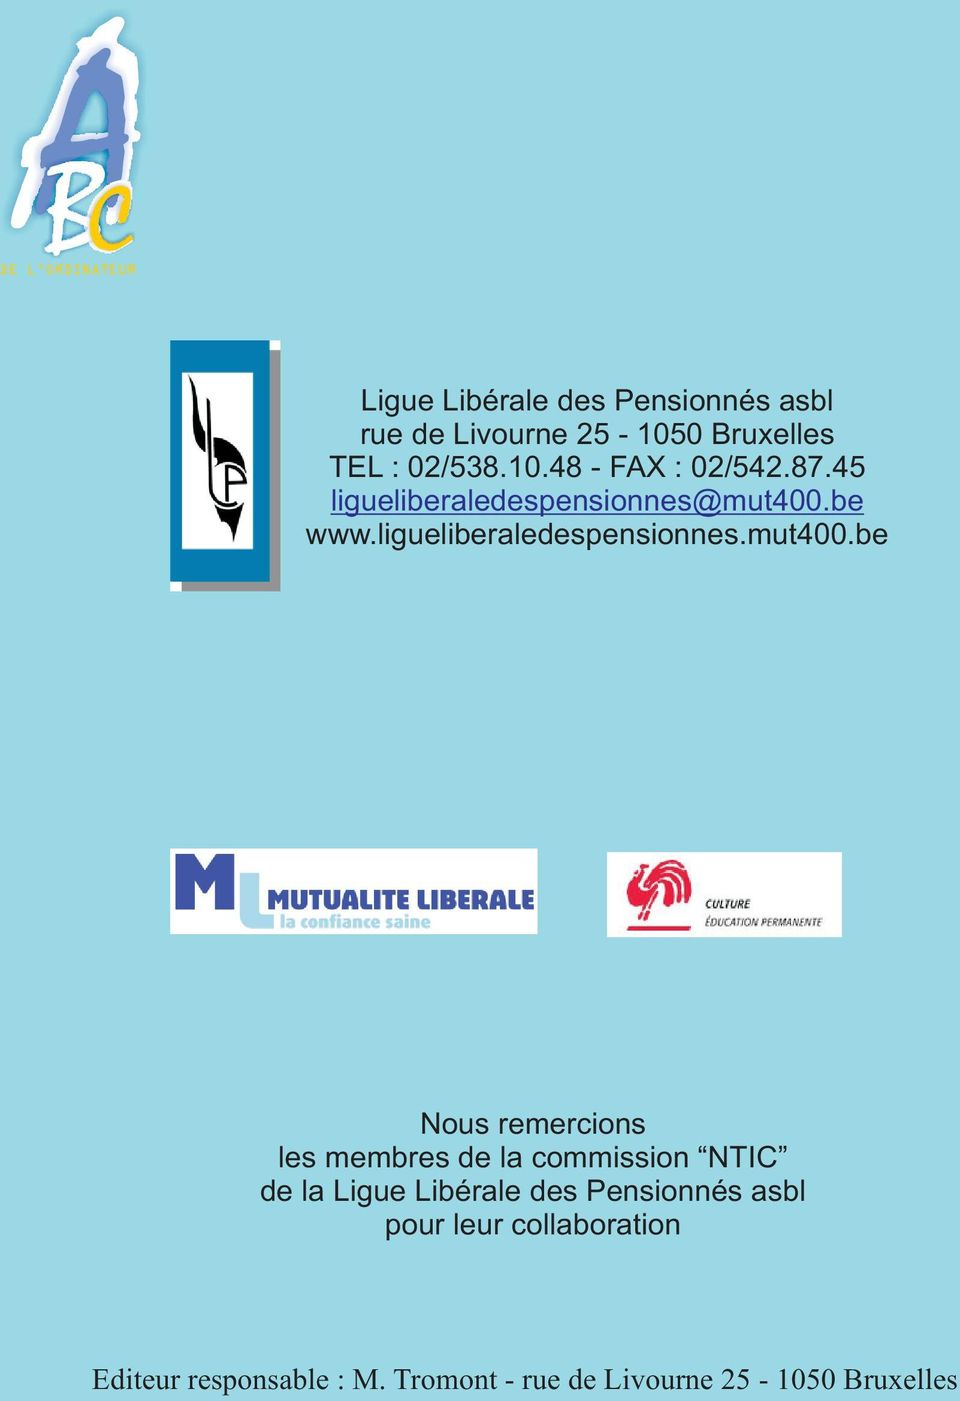 be www.ligueliberaledespensionnes.mut400.